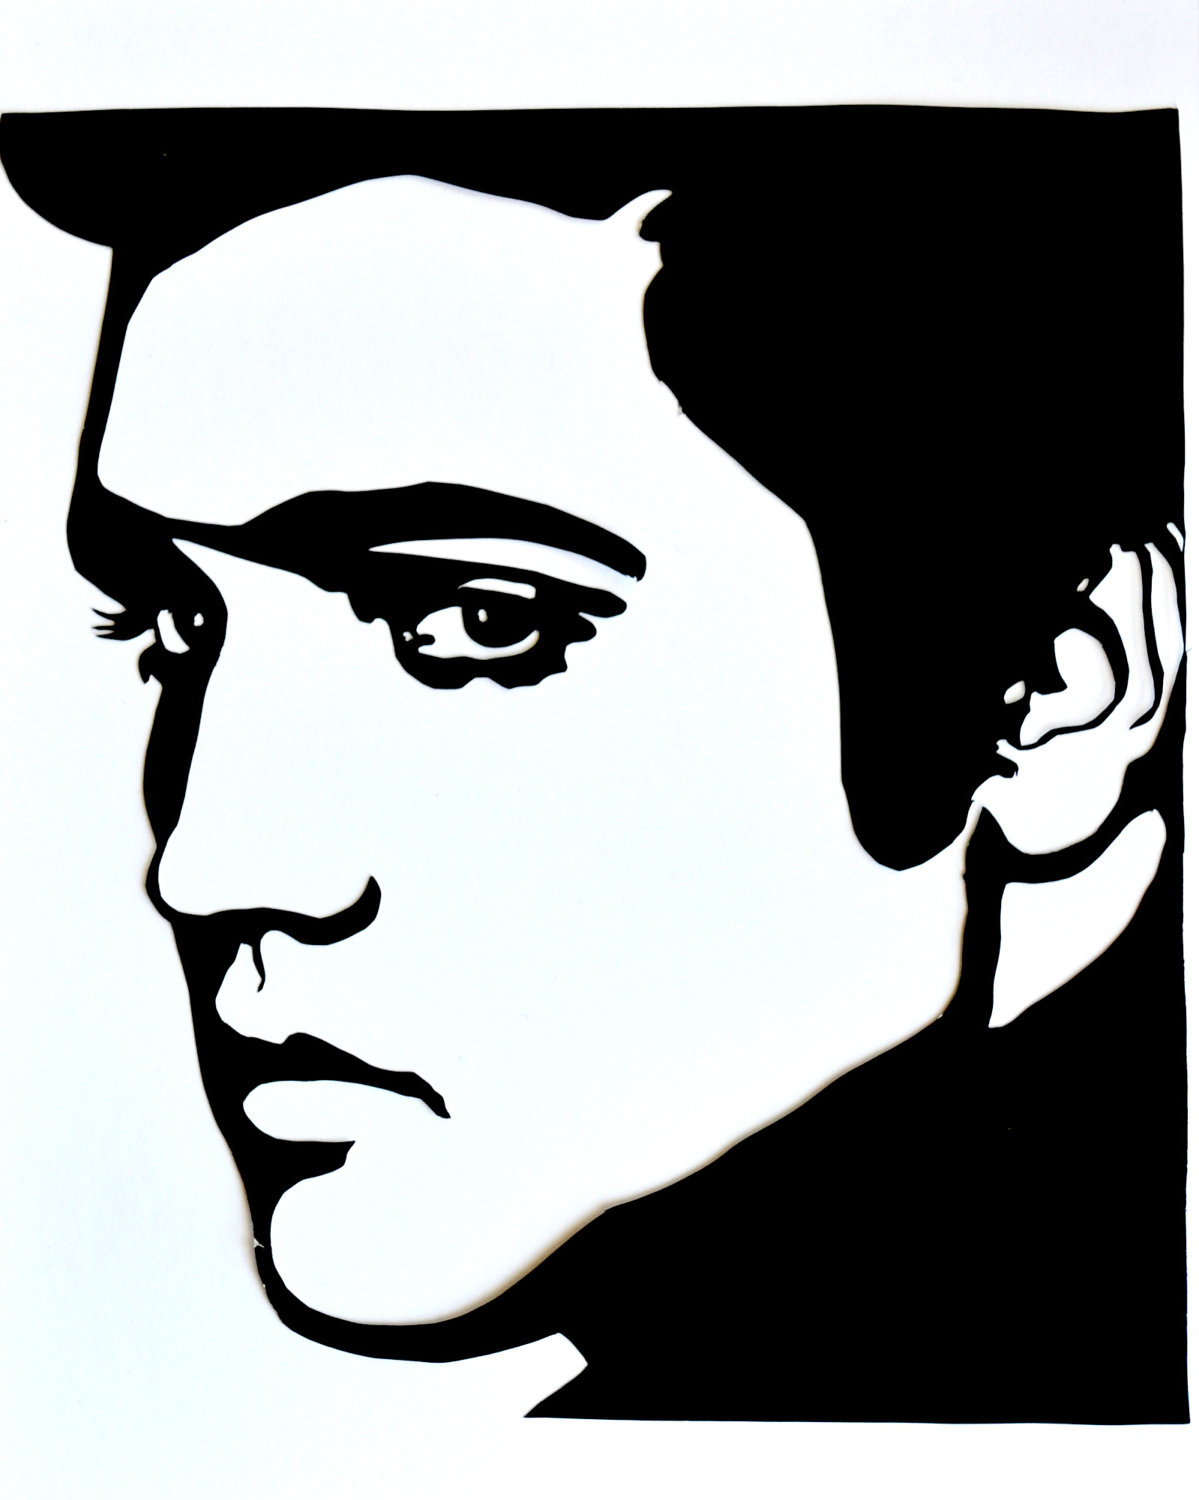 elvis silhouette images at getdrawings com free for Guitar Drawings Clip Art Acoustic Guitar Clip Art